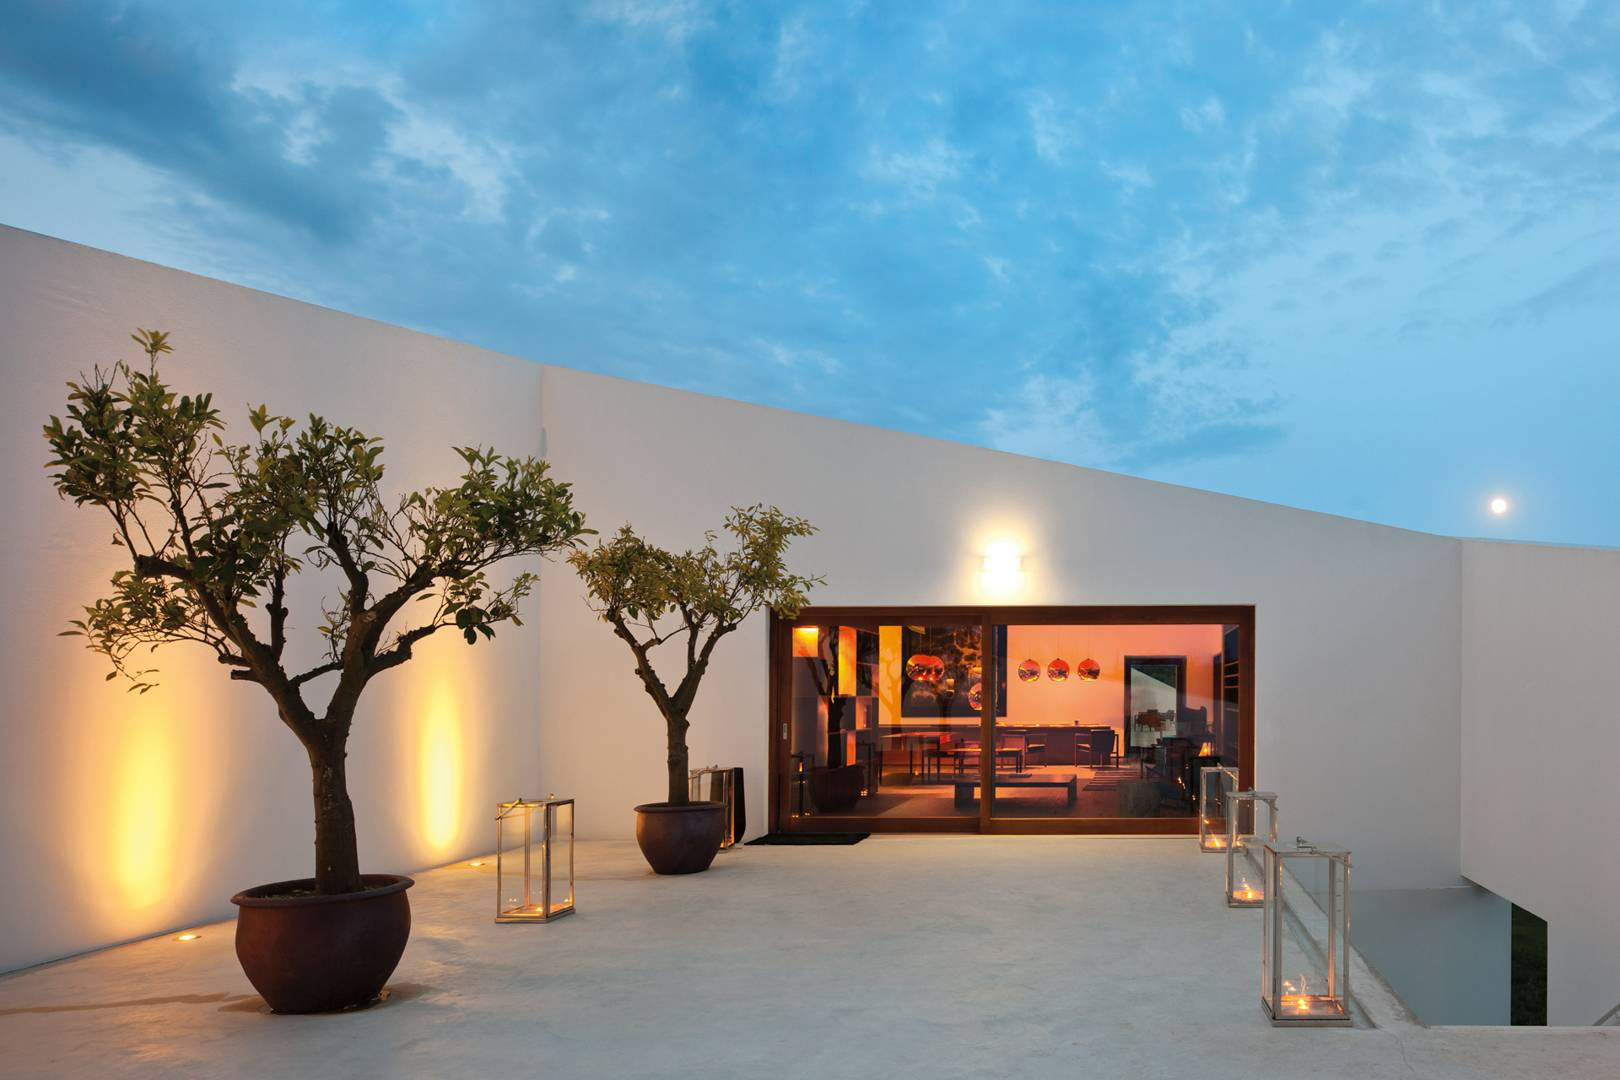 Top 5 boutique hotels in Portugal